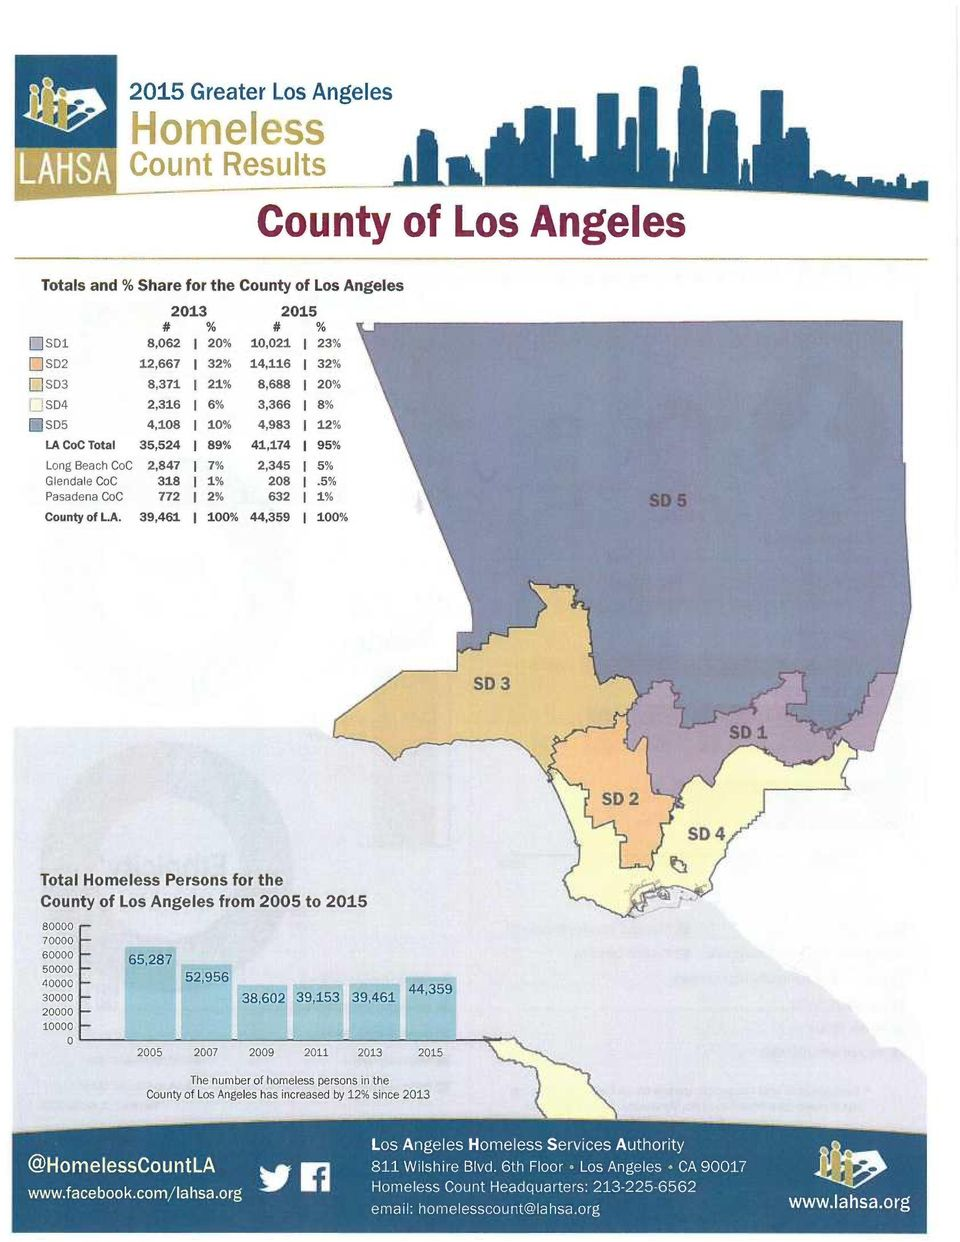 5% Pasadena CoC 772 I 2% 632 1% County of L.A.